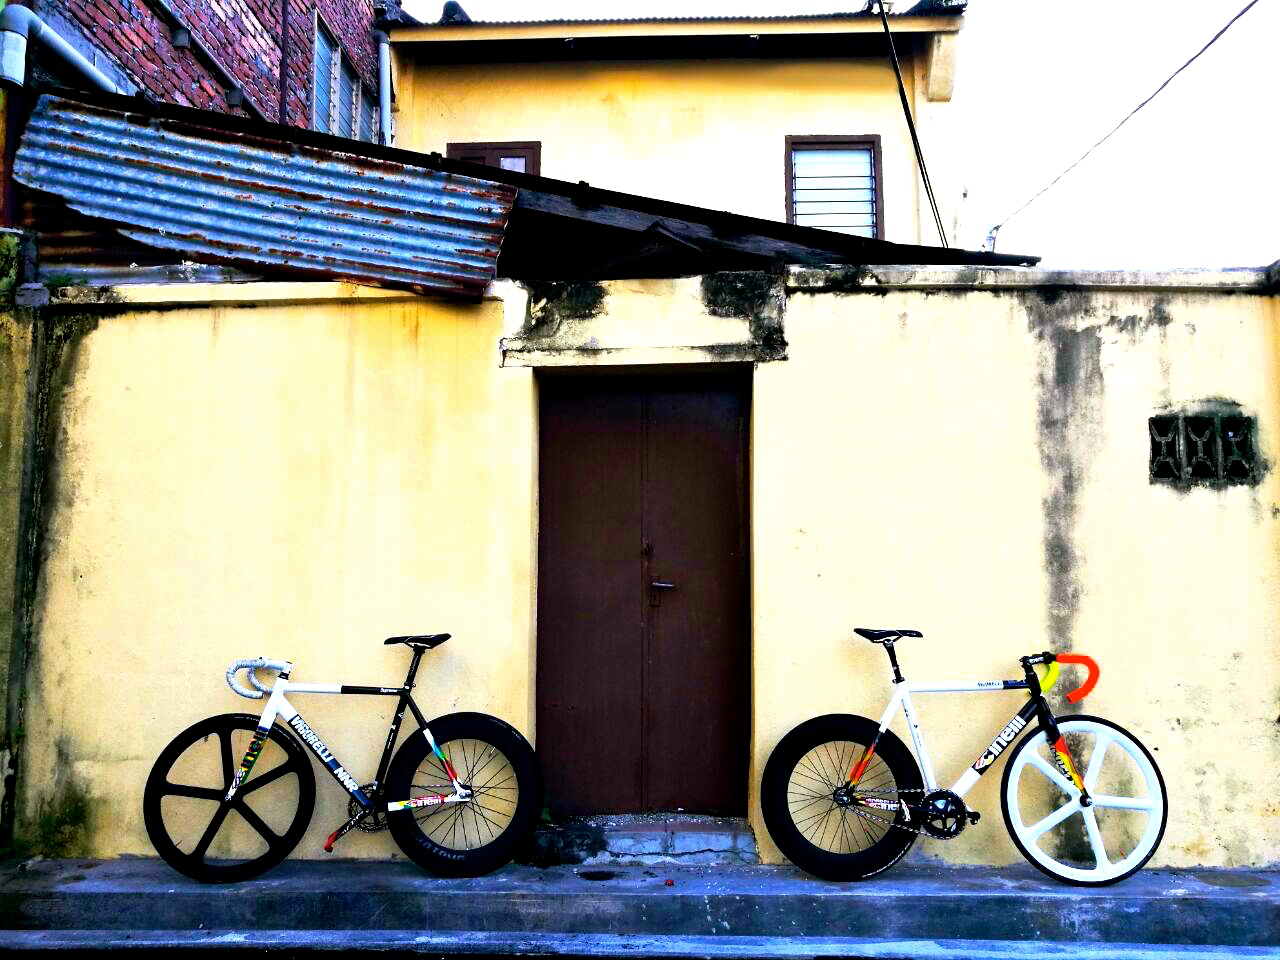 rotary-teluk-intan-to-kl-arty-fixie-shot-alvin-lee